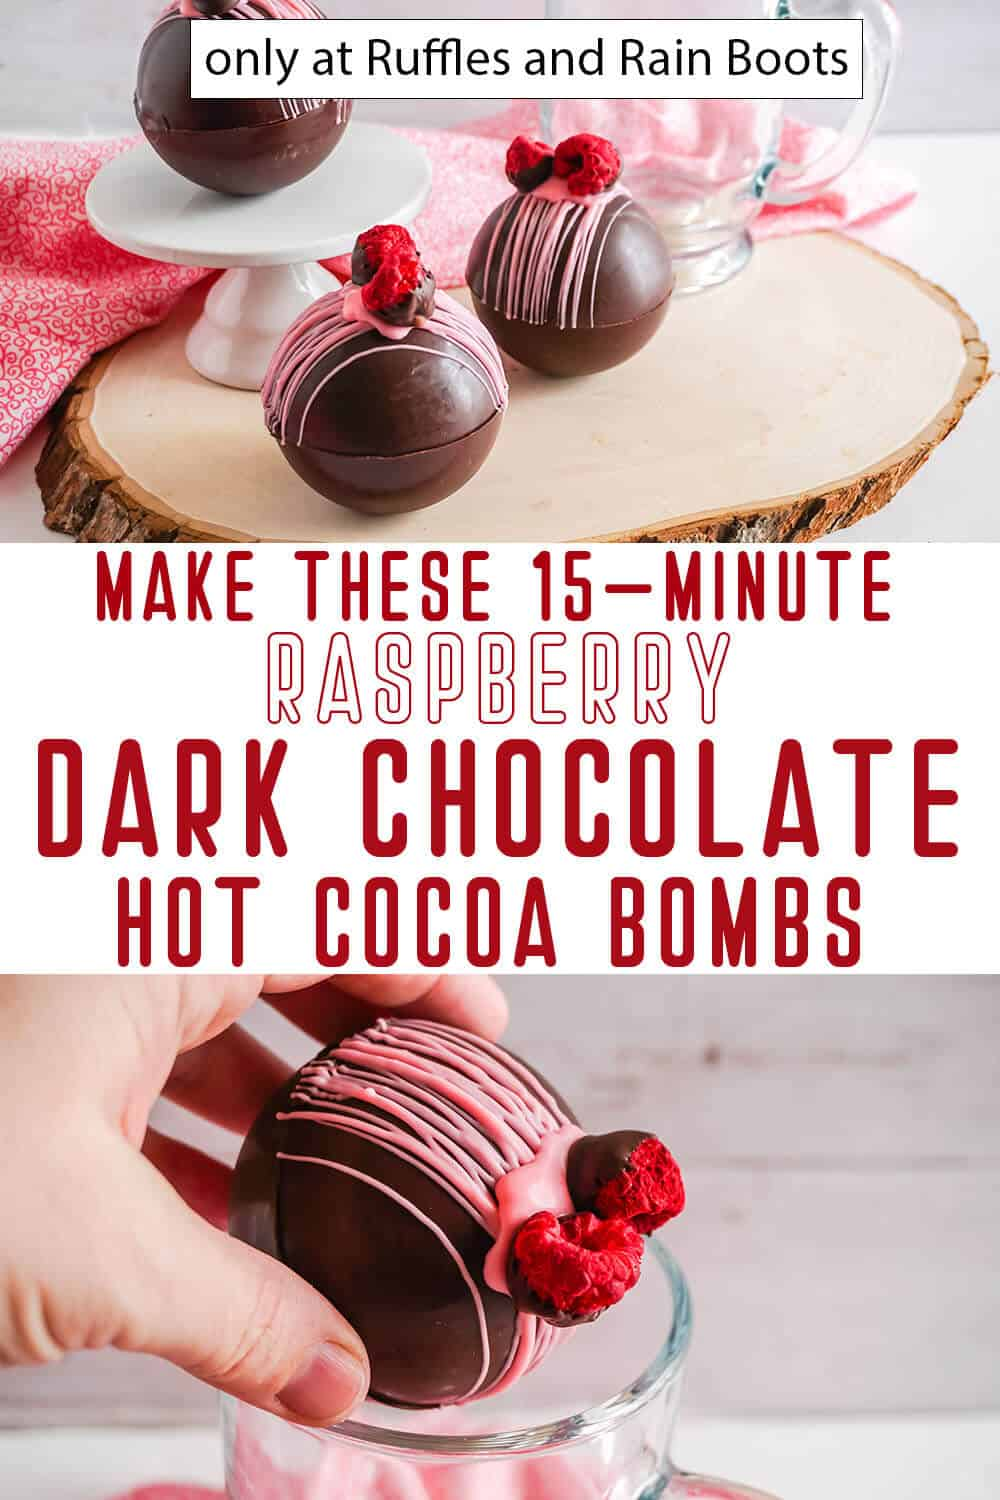 photo collage of valentines hot cocoa bombs with raspberry and dark chocolate with text which reads make these 15-minute raspberry dark chocolate hot cocoa bombs